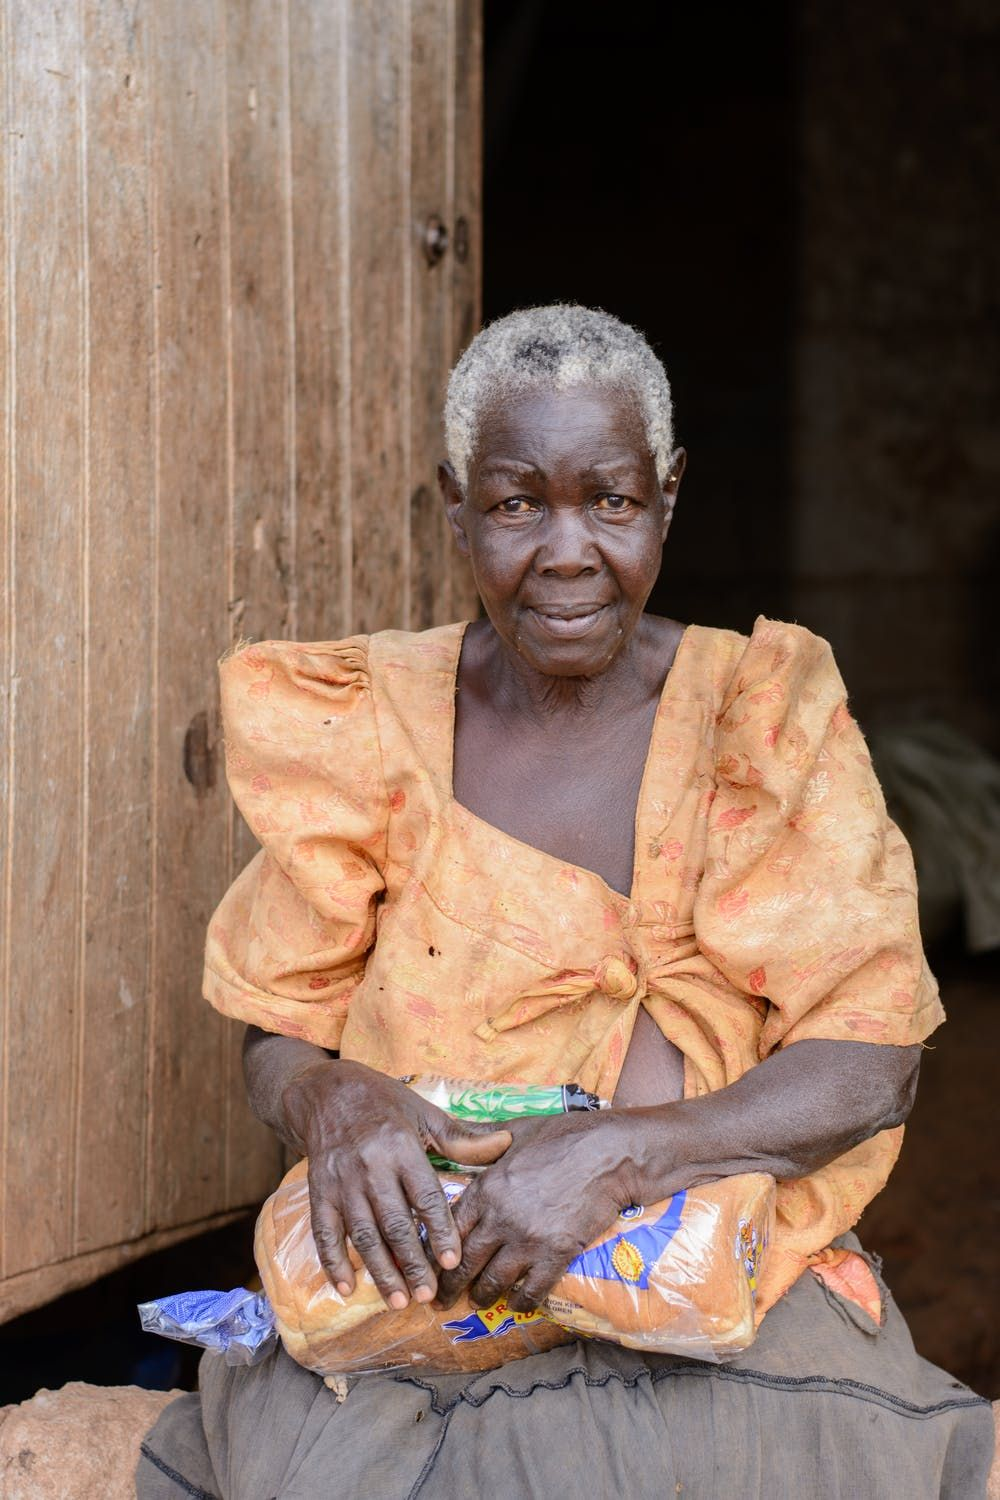 An elderly African woman in an orange shirt